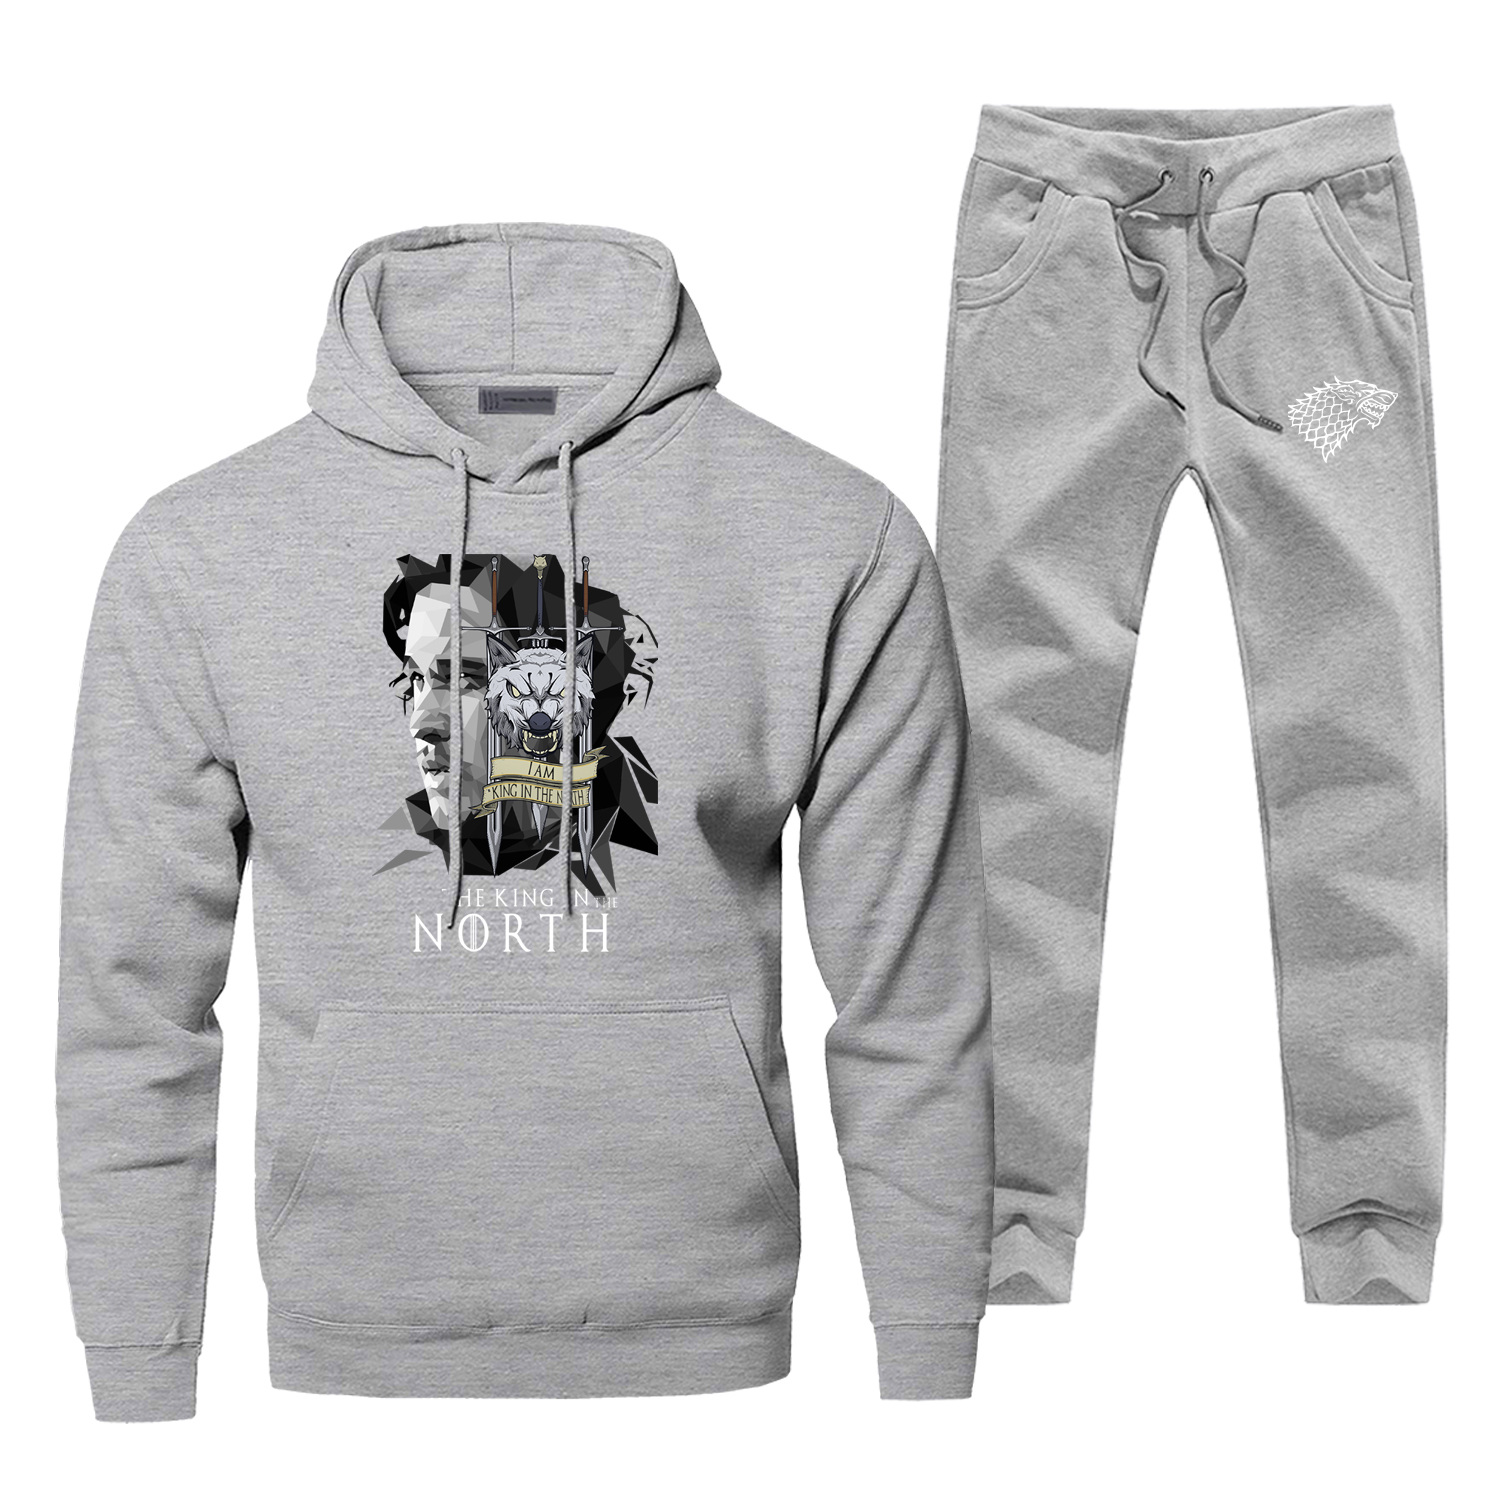 Game Of Thrones Gray Men's Full Suit Tracksuit The King In The North Fashion Casual Pants Sweatshirt TV Show Warm Sportsman Wear